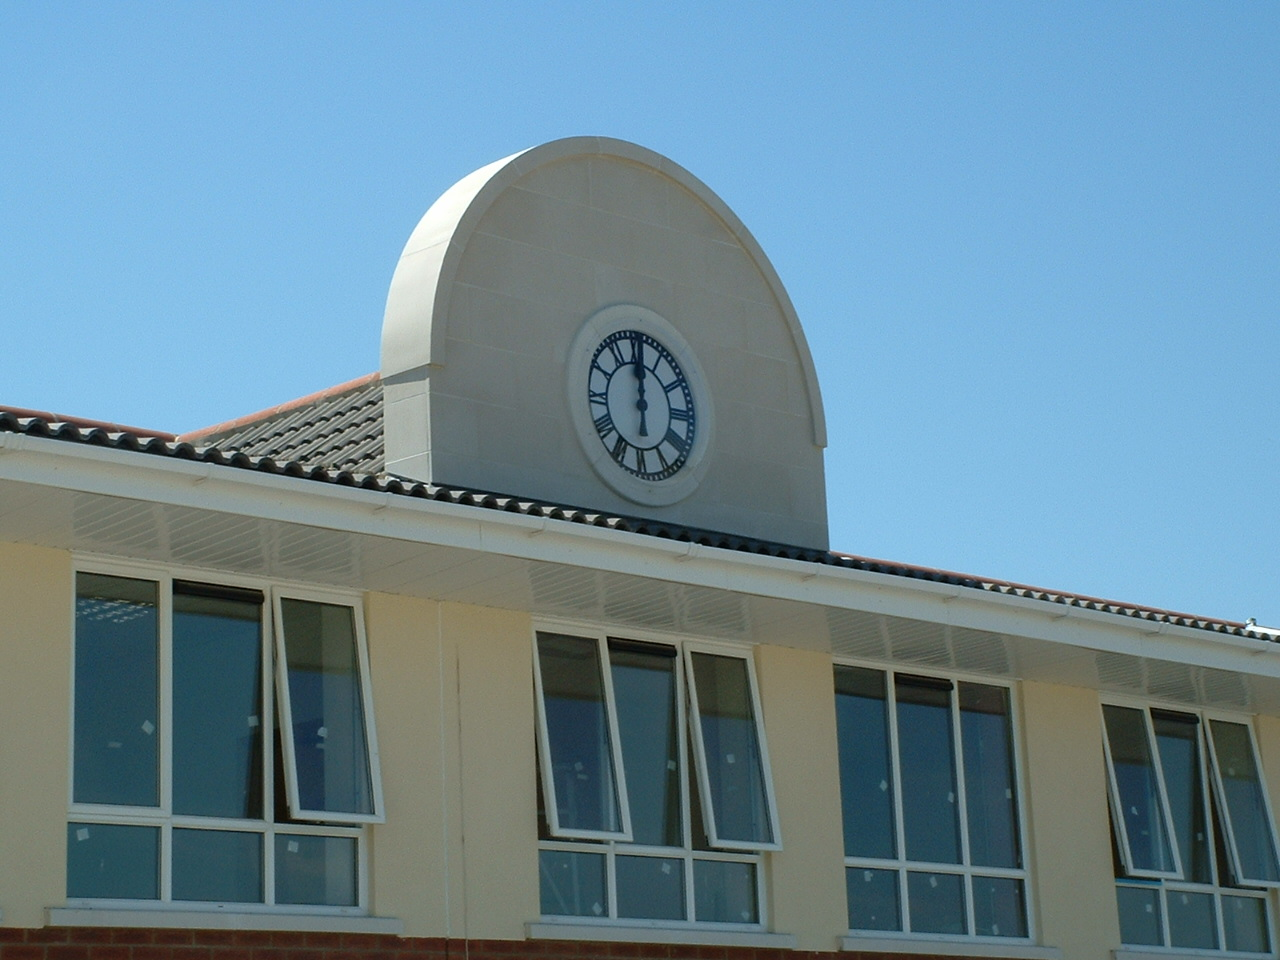 Exterior Clock on School